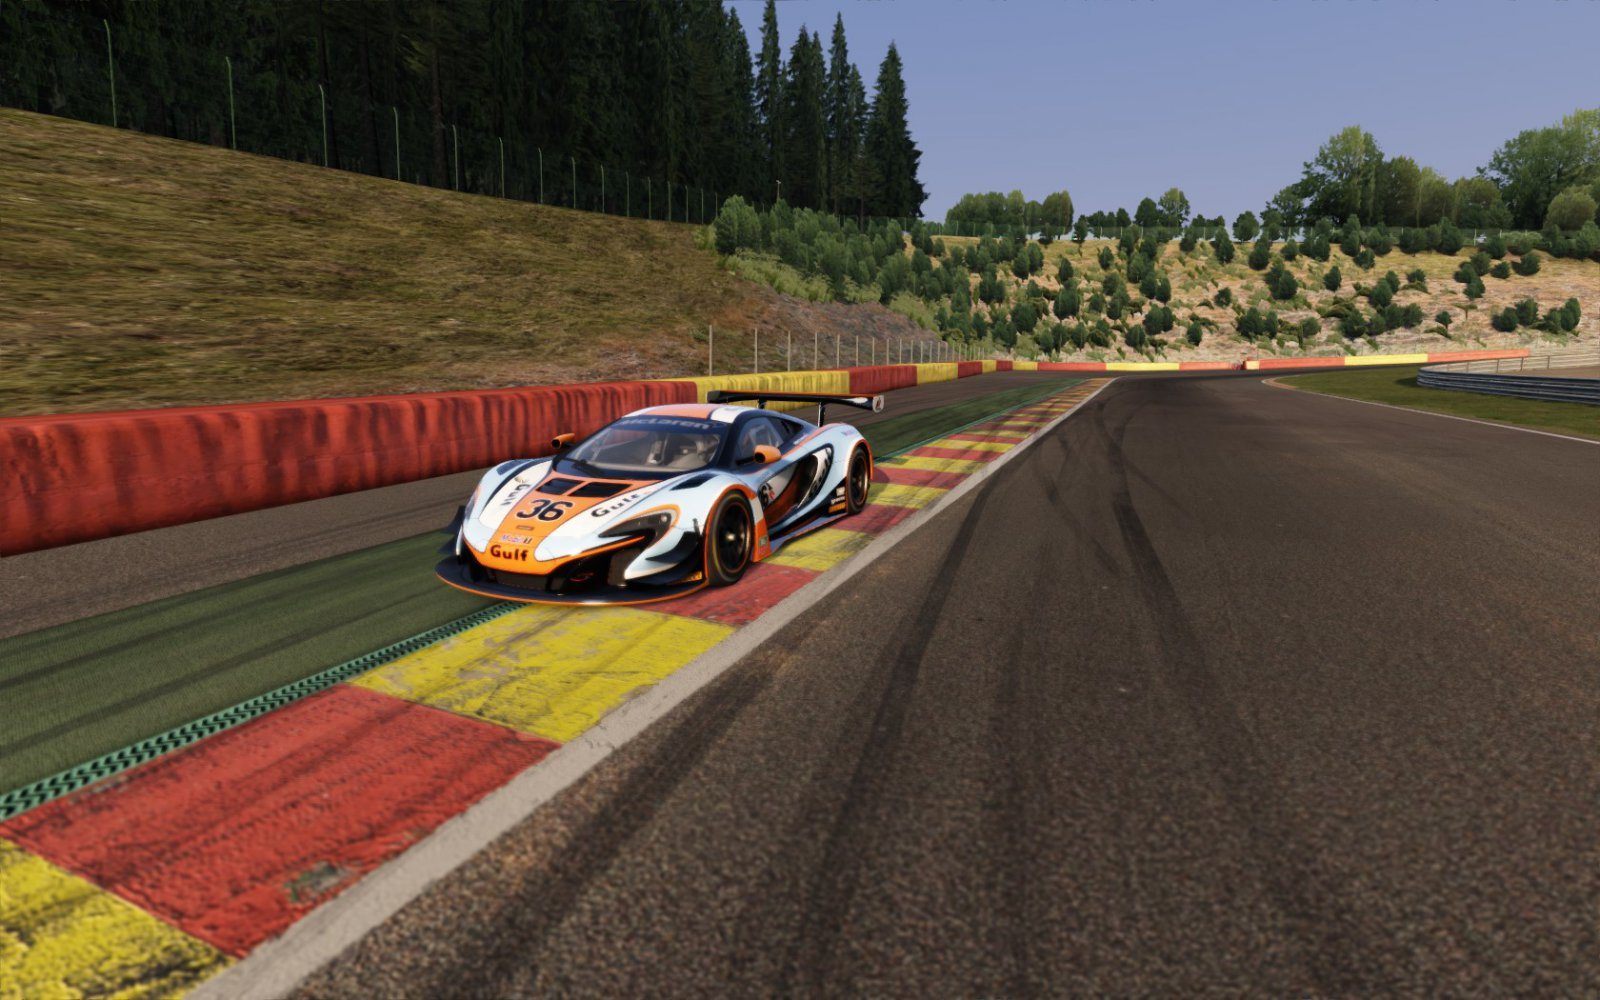 Screenshot_ks_mclaren_650_gt3_spa_16-4-119-18-41-25.jpg